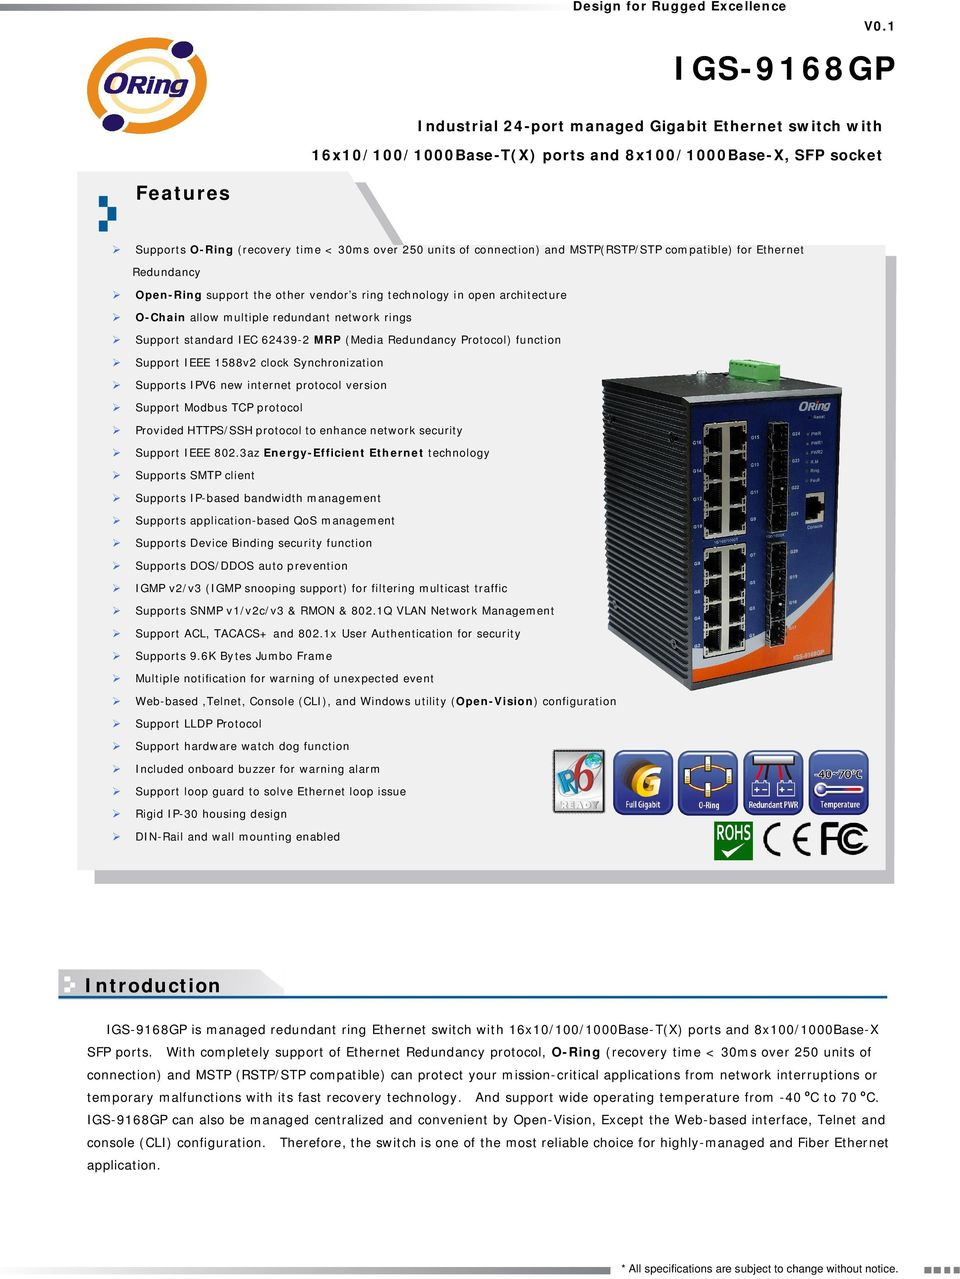 standard IEC 62439-2 MRP (Media Redundancy Protocol) function Support IEEE 1588v2 clock Synchronization Supports IPV6 new internet protocol version Support Modbus TCP protocol Provided HTTPS/SSH